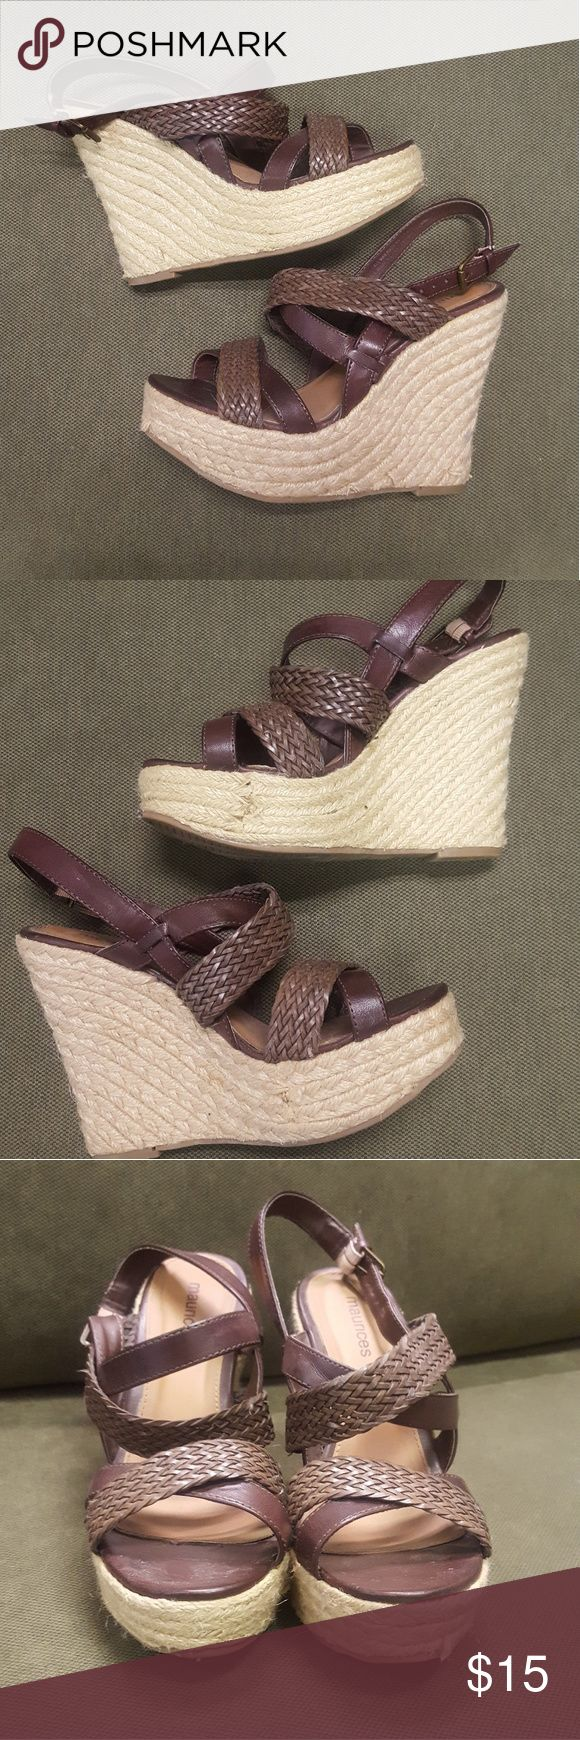 Super cute Maurices wedges!!!! Size 6 brown wedges. They have minimal wear and the pictures show where certain parts have frayed on the wedge. It is hardly noticable in person but wanted to show it on pics. Love these adorable shoes! Maurices Shoes Wedges